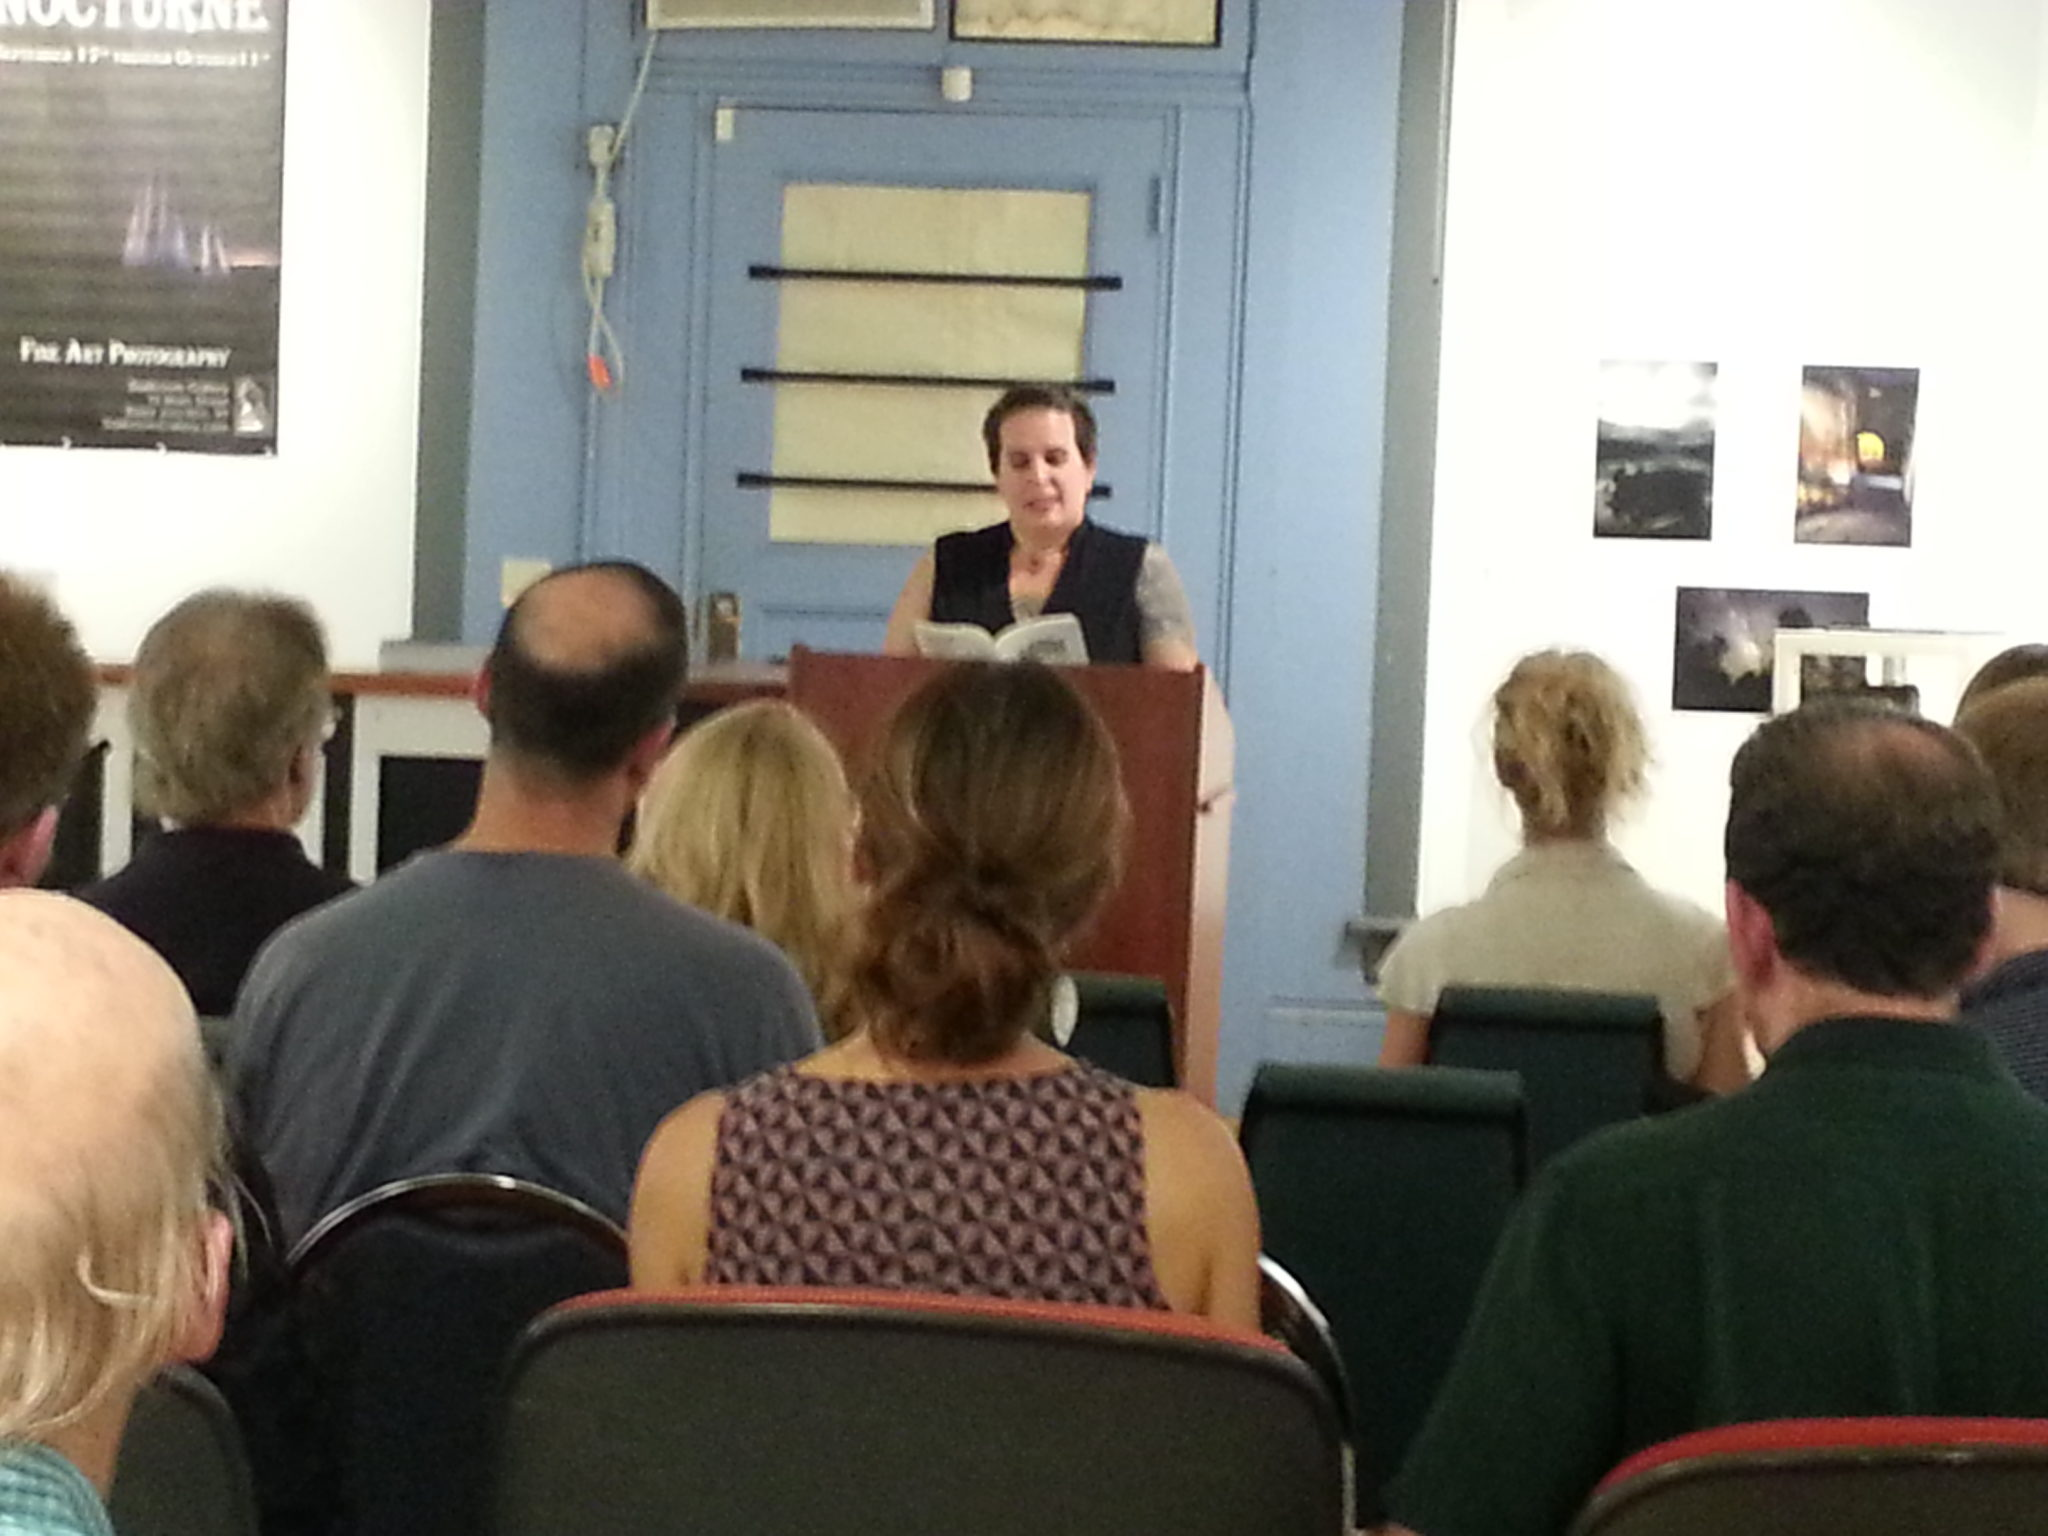 Zoey Armstrong, Best of the Burlington Writers Workshop 2015 poetry editor